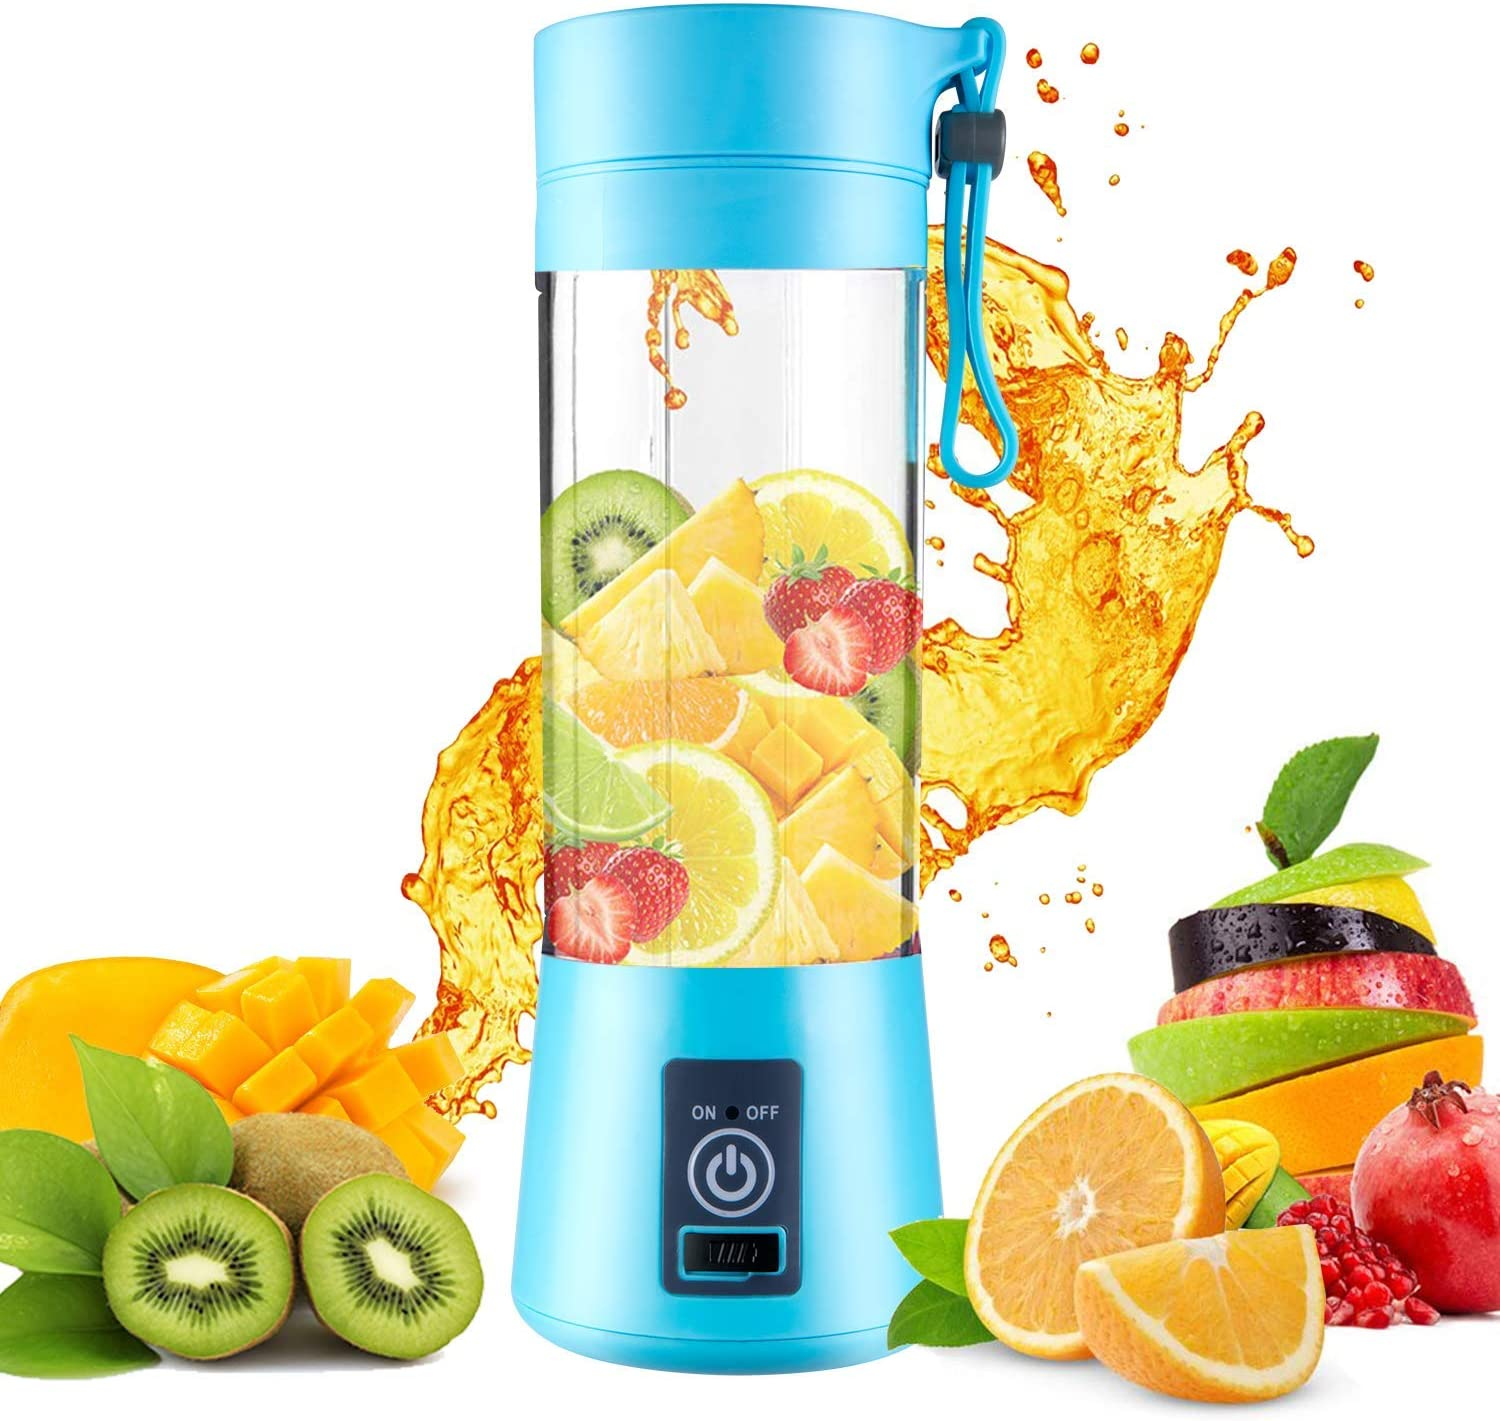 Portable Blender Single Serve, Personal Size Blender USB Rechargeable Juicer Cup Fruit Mixing Machine Baby Travel 380ml FDA, BPA-Free (blue)